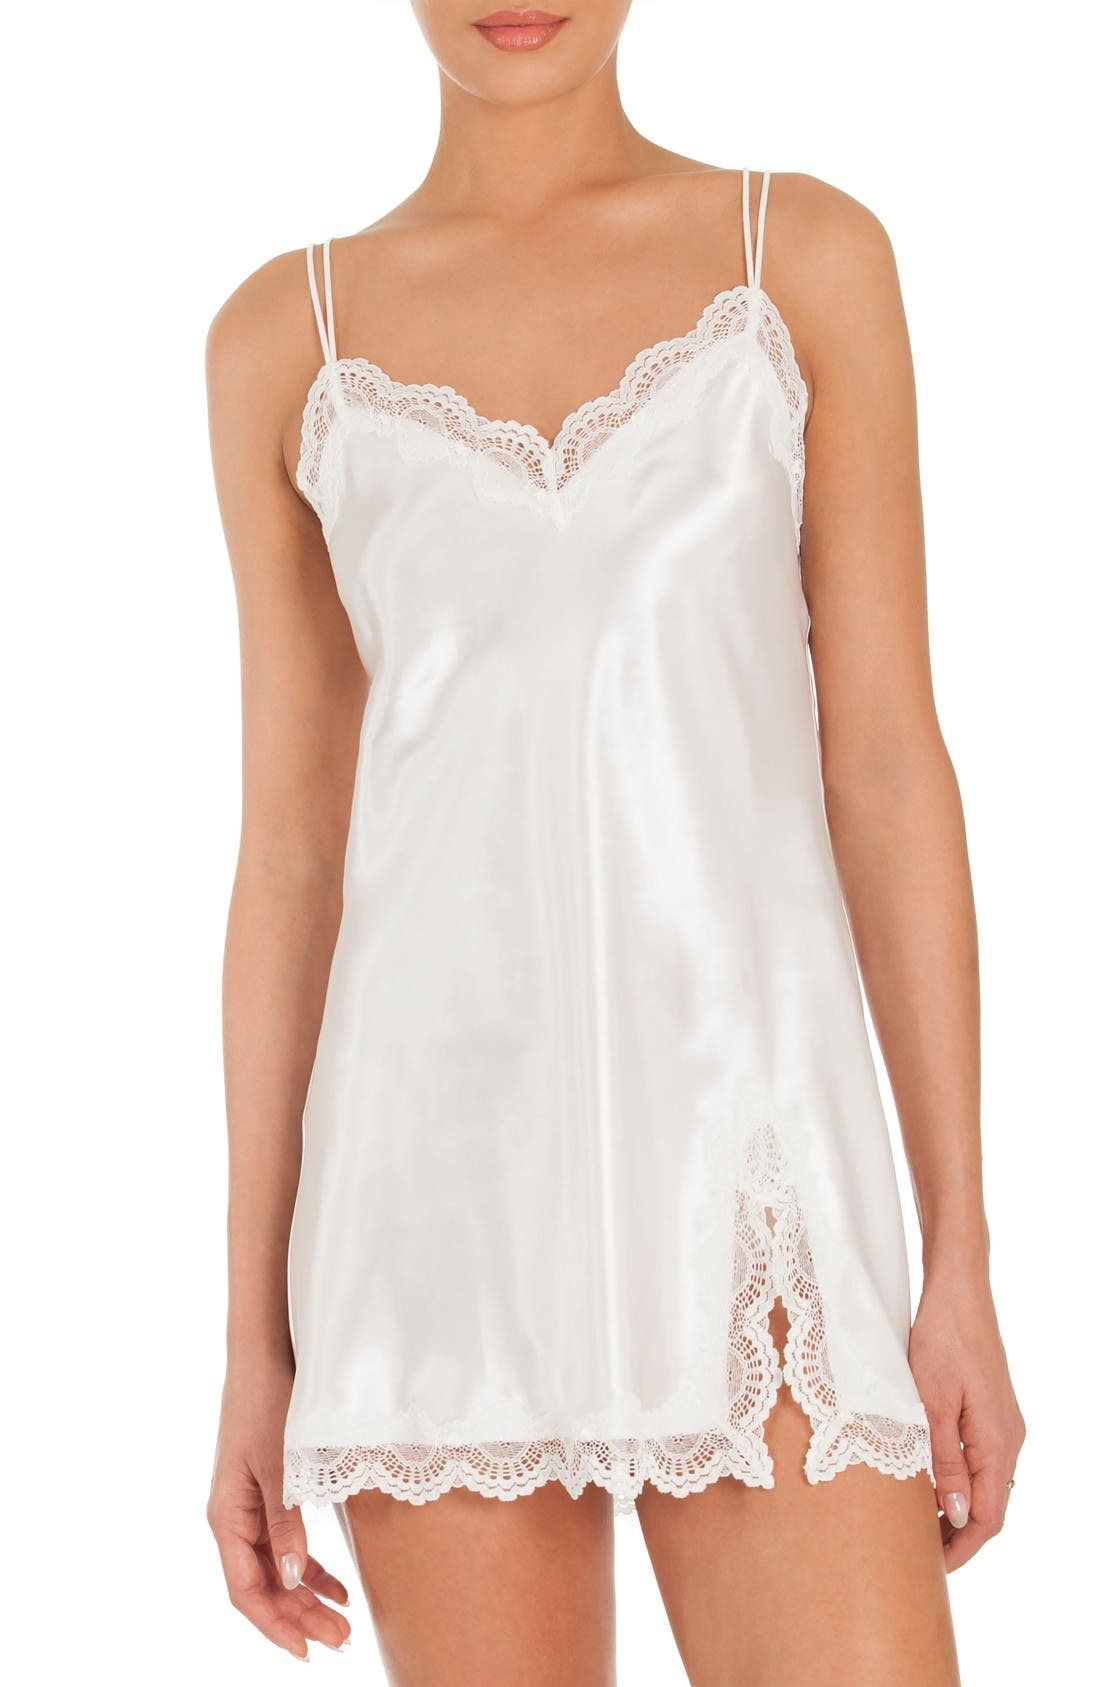 In Bloom by Jonquil Satin Chemise